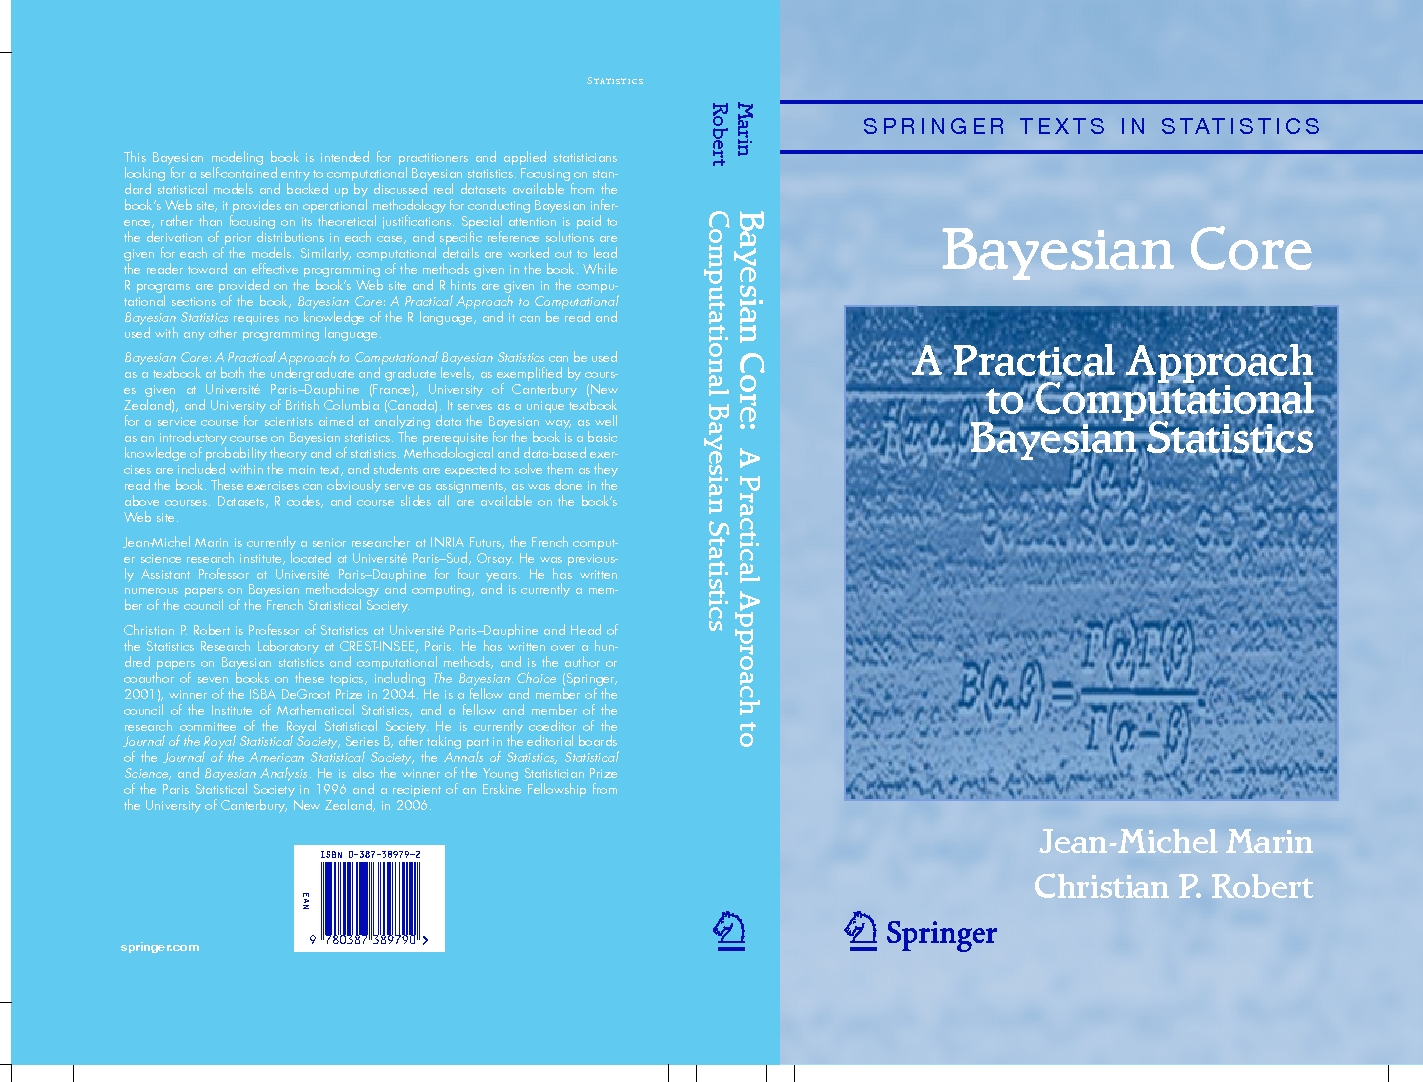 an introduction to the analysis of nicaraguans as mestizos I cultural analysis i introduction this research paper will be an in-depth analysis of south korea and understanding effect on market the paper will cover descriptions of the country and the financial conditions which are relevant for conducting this research.